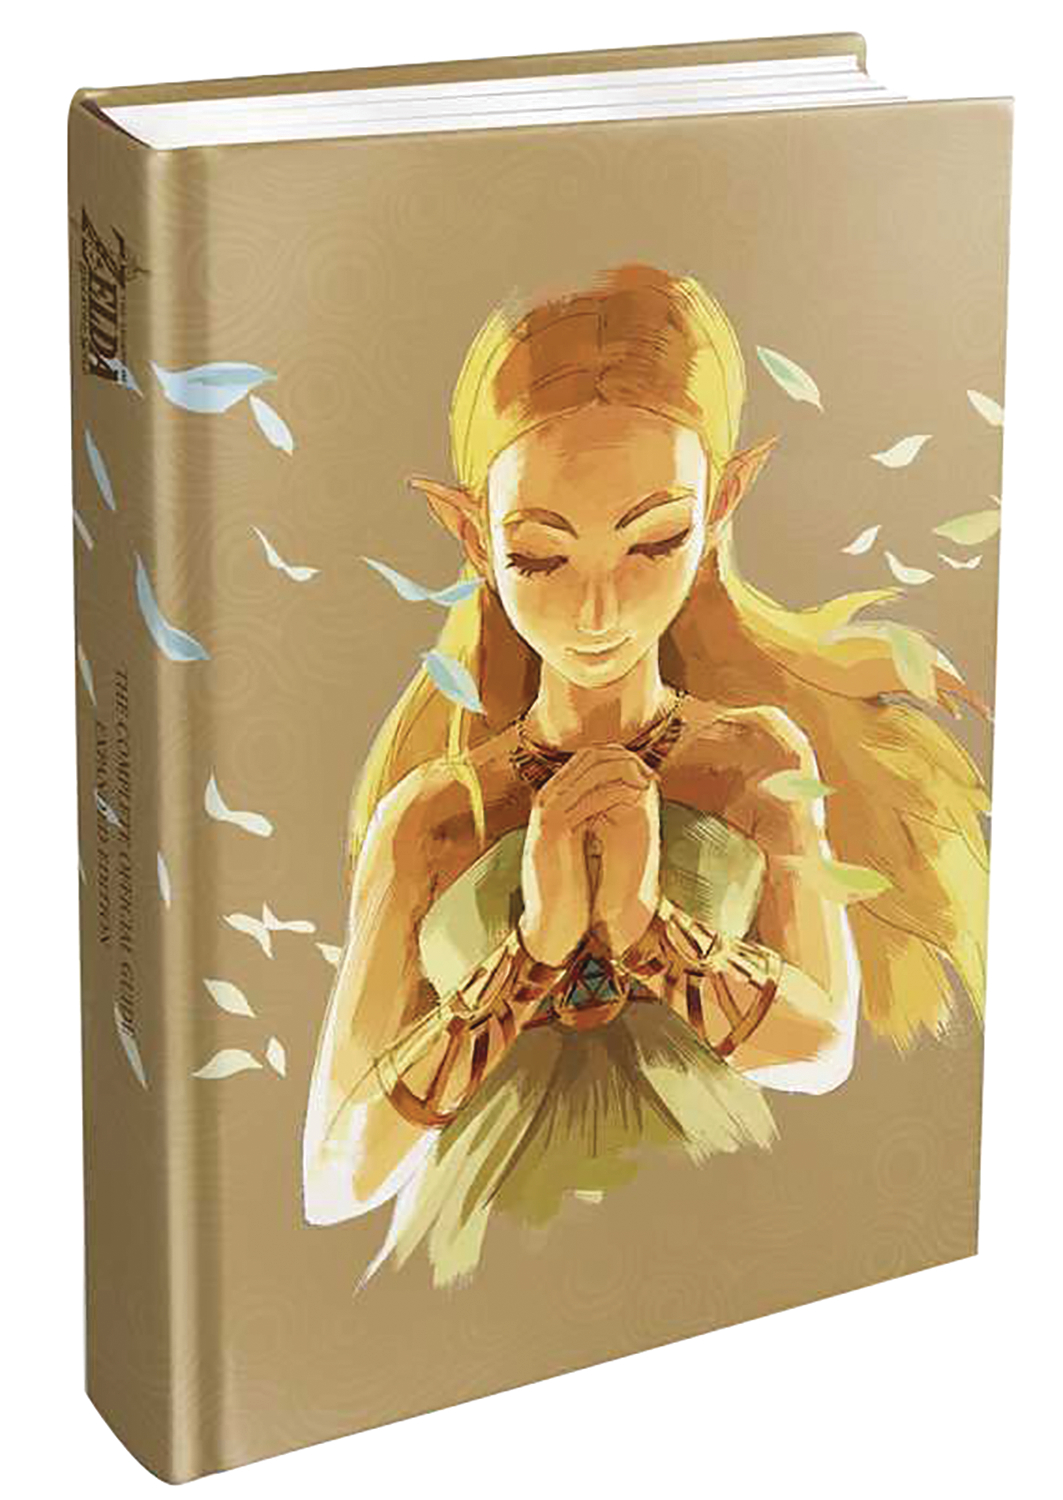 LEGEND OF ZELDA BREATH OF THE WILD EXPANDED ED HC